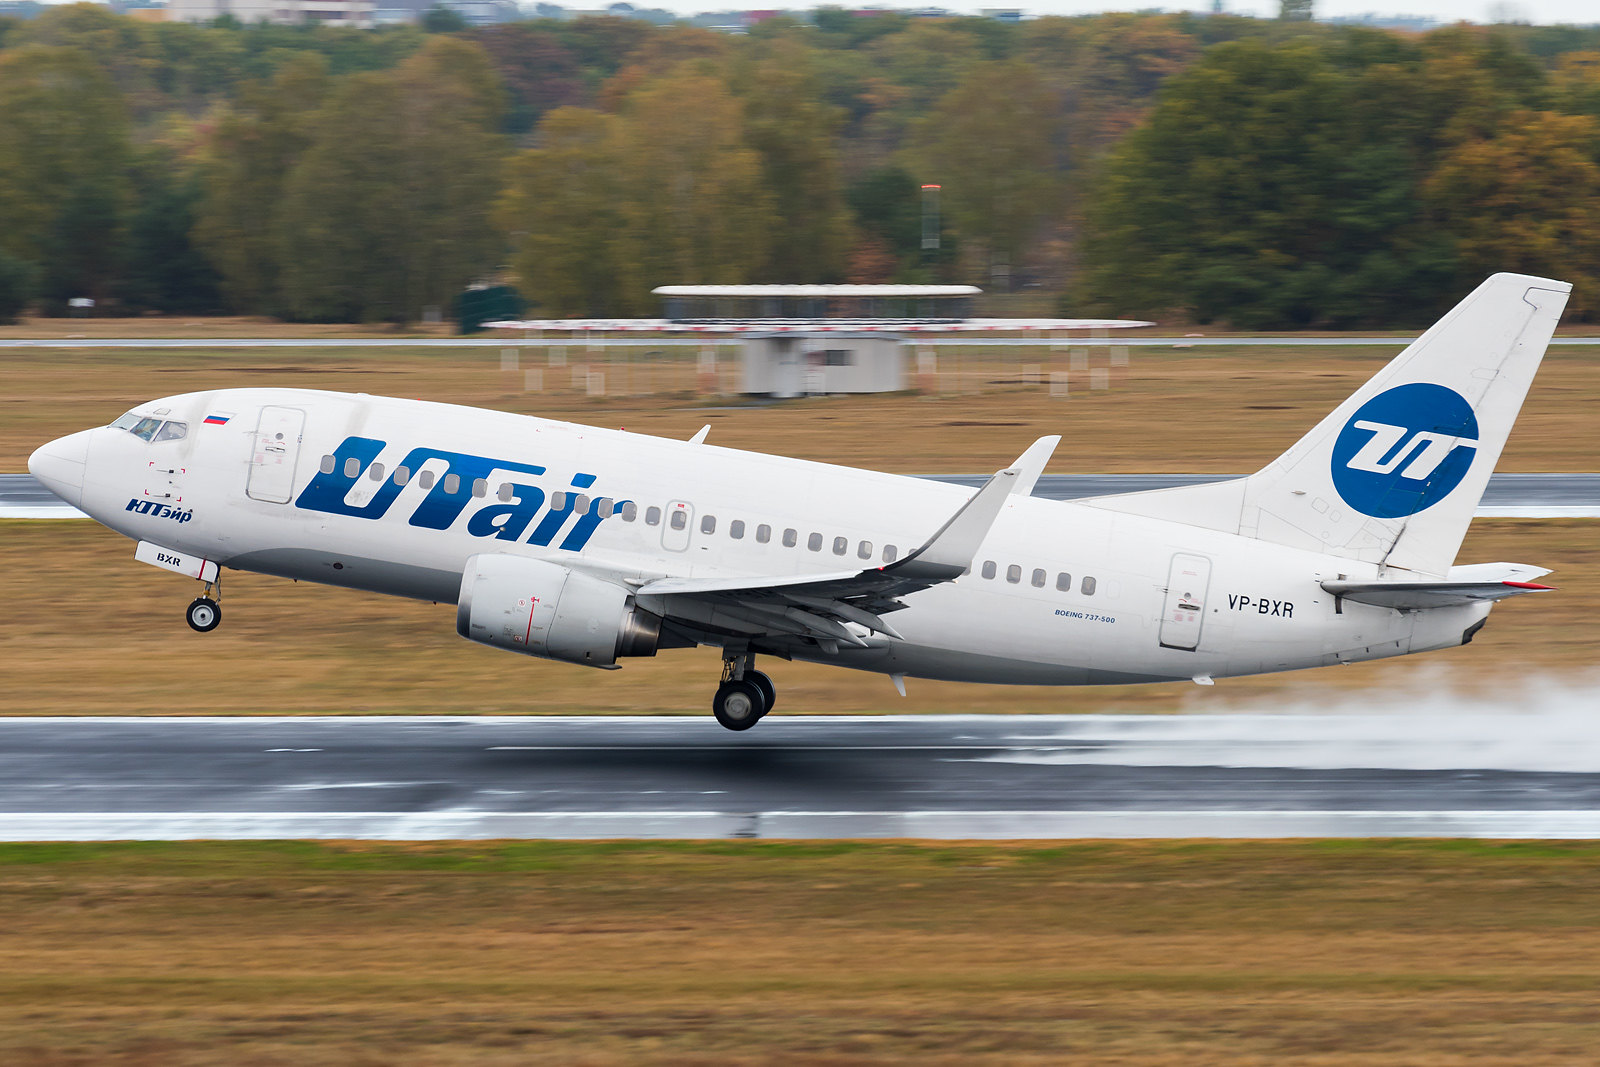 Utair - B737 with a nice water spray on the runway.